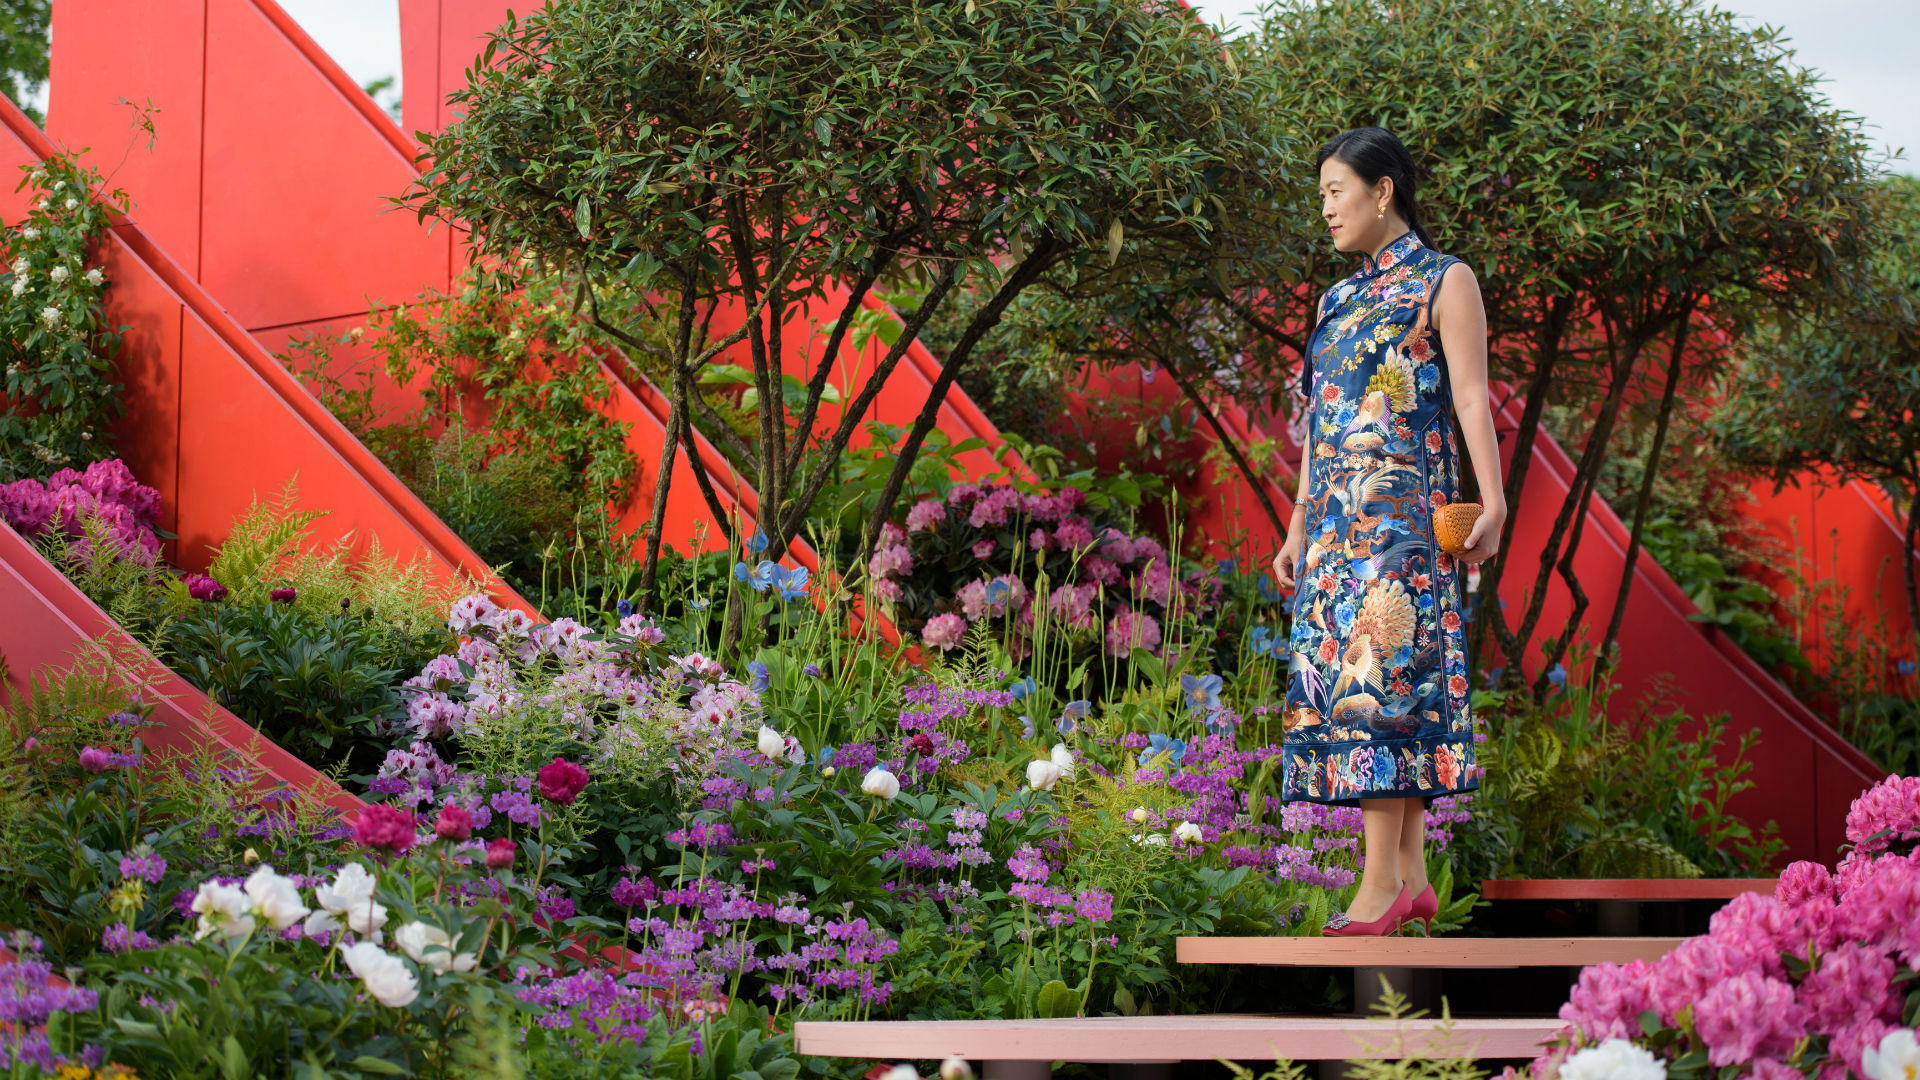 rhs chelsea flower show 2020 - special event